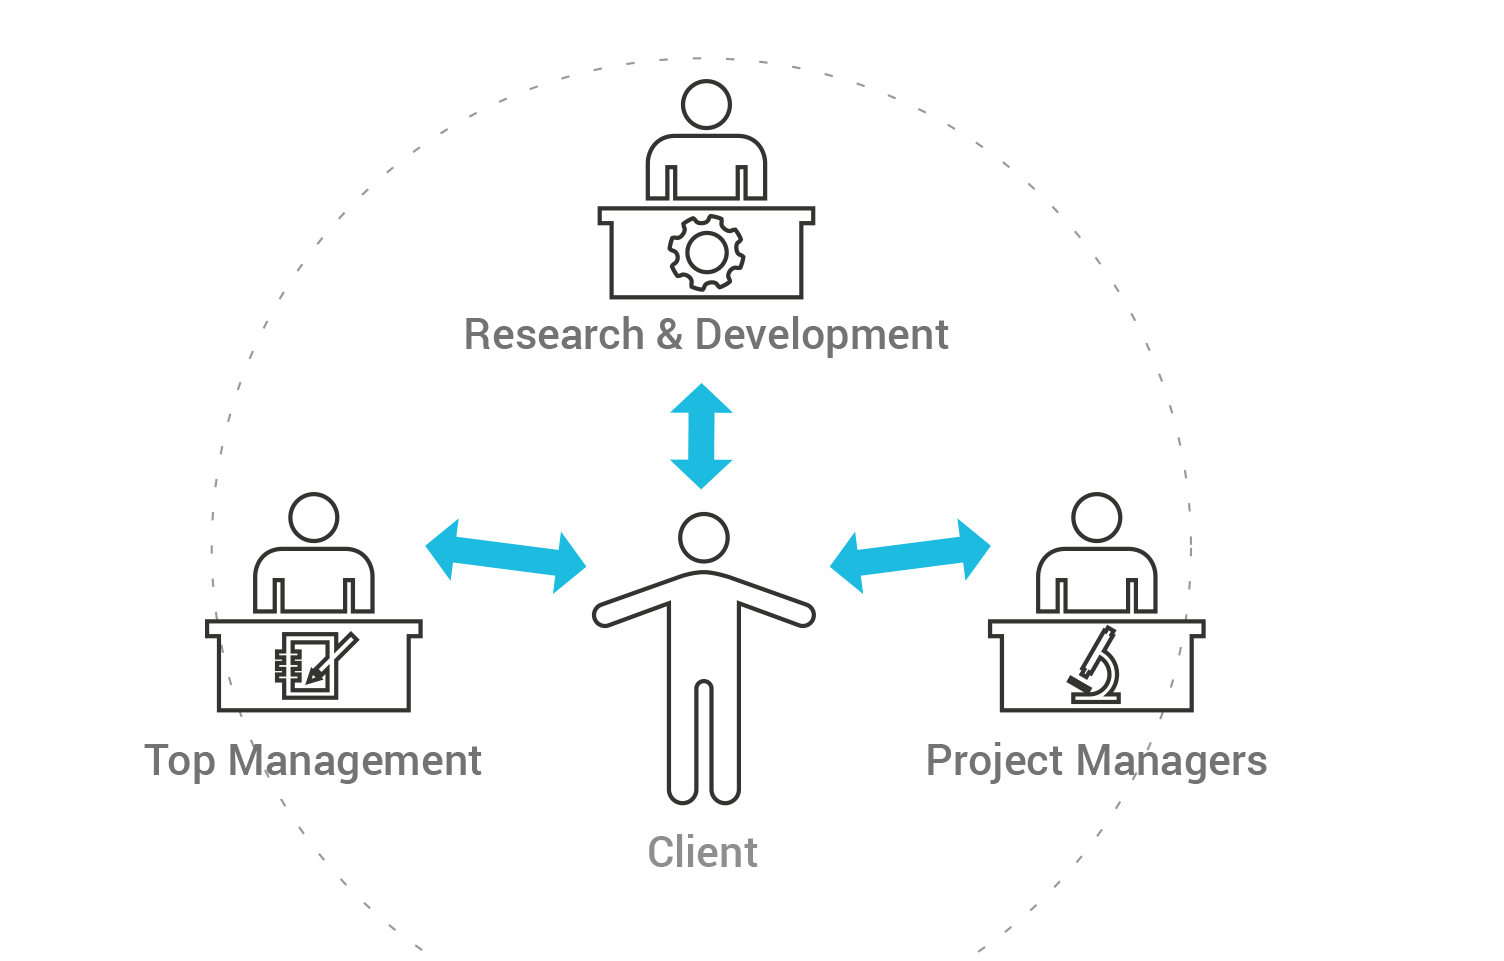 Software Development With QA in Agile